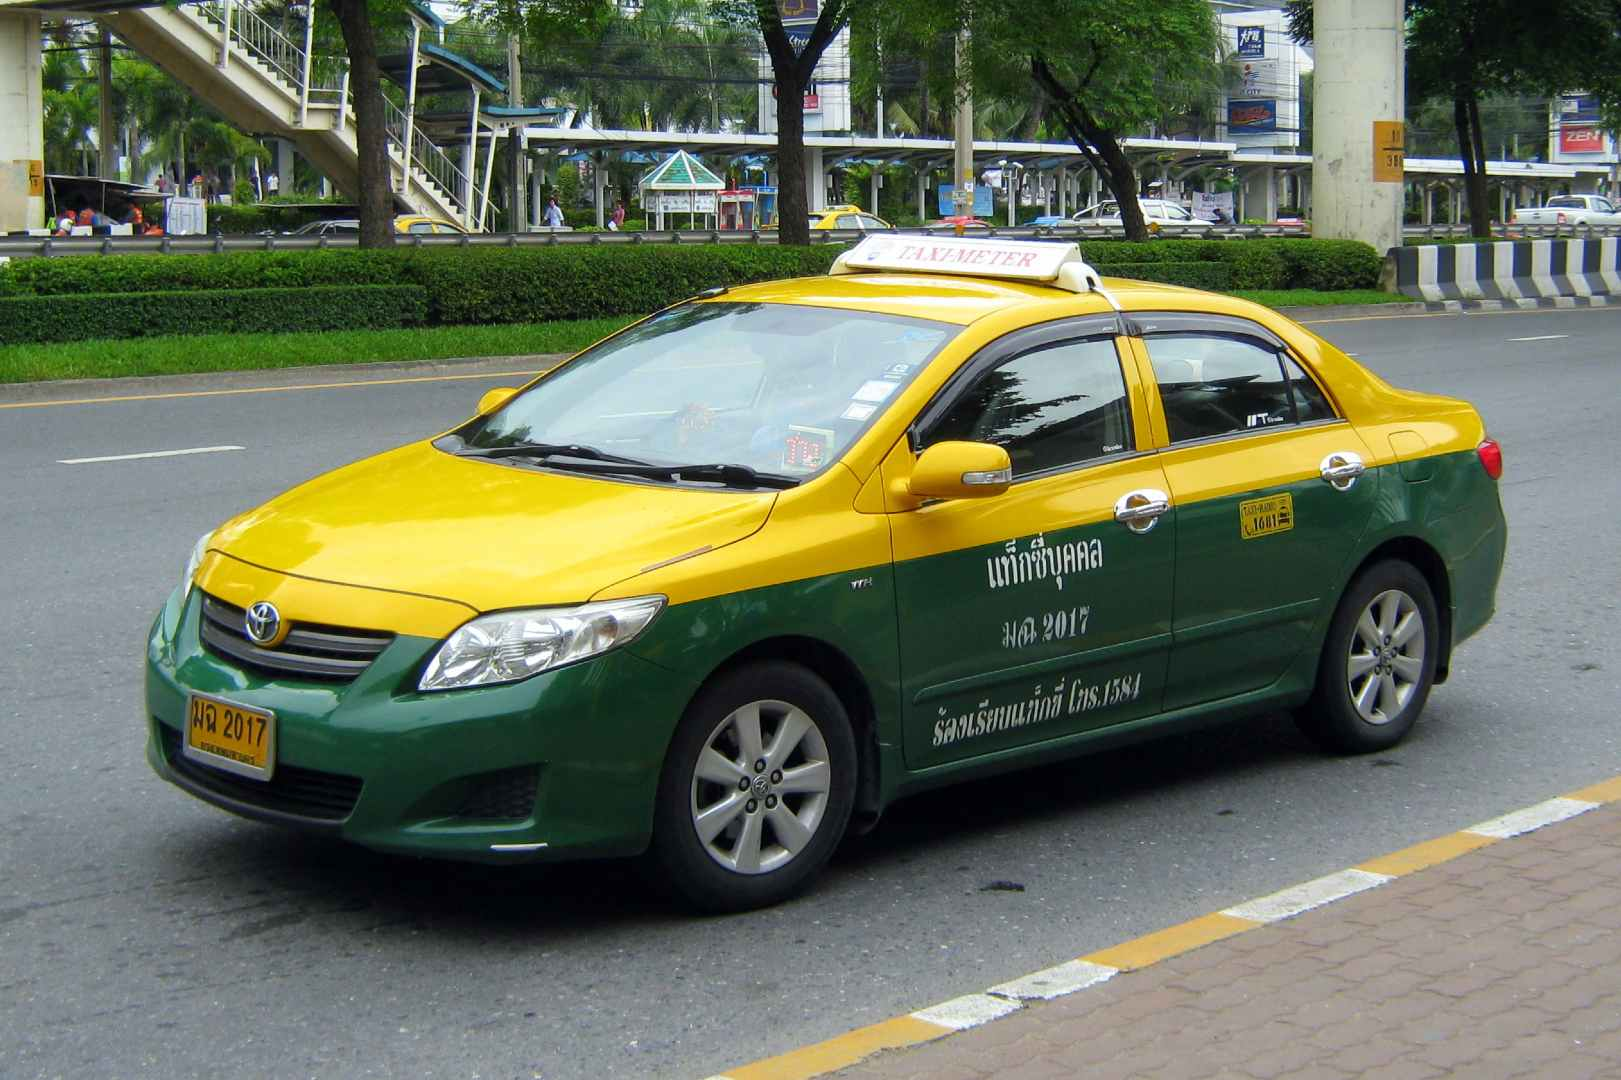 Green / Yellow taxi in Bangkok